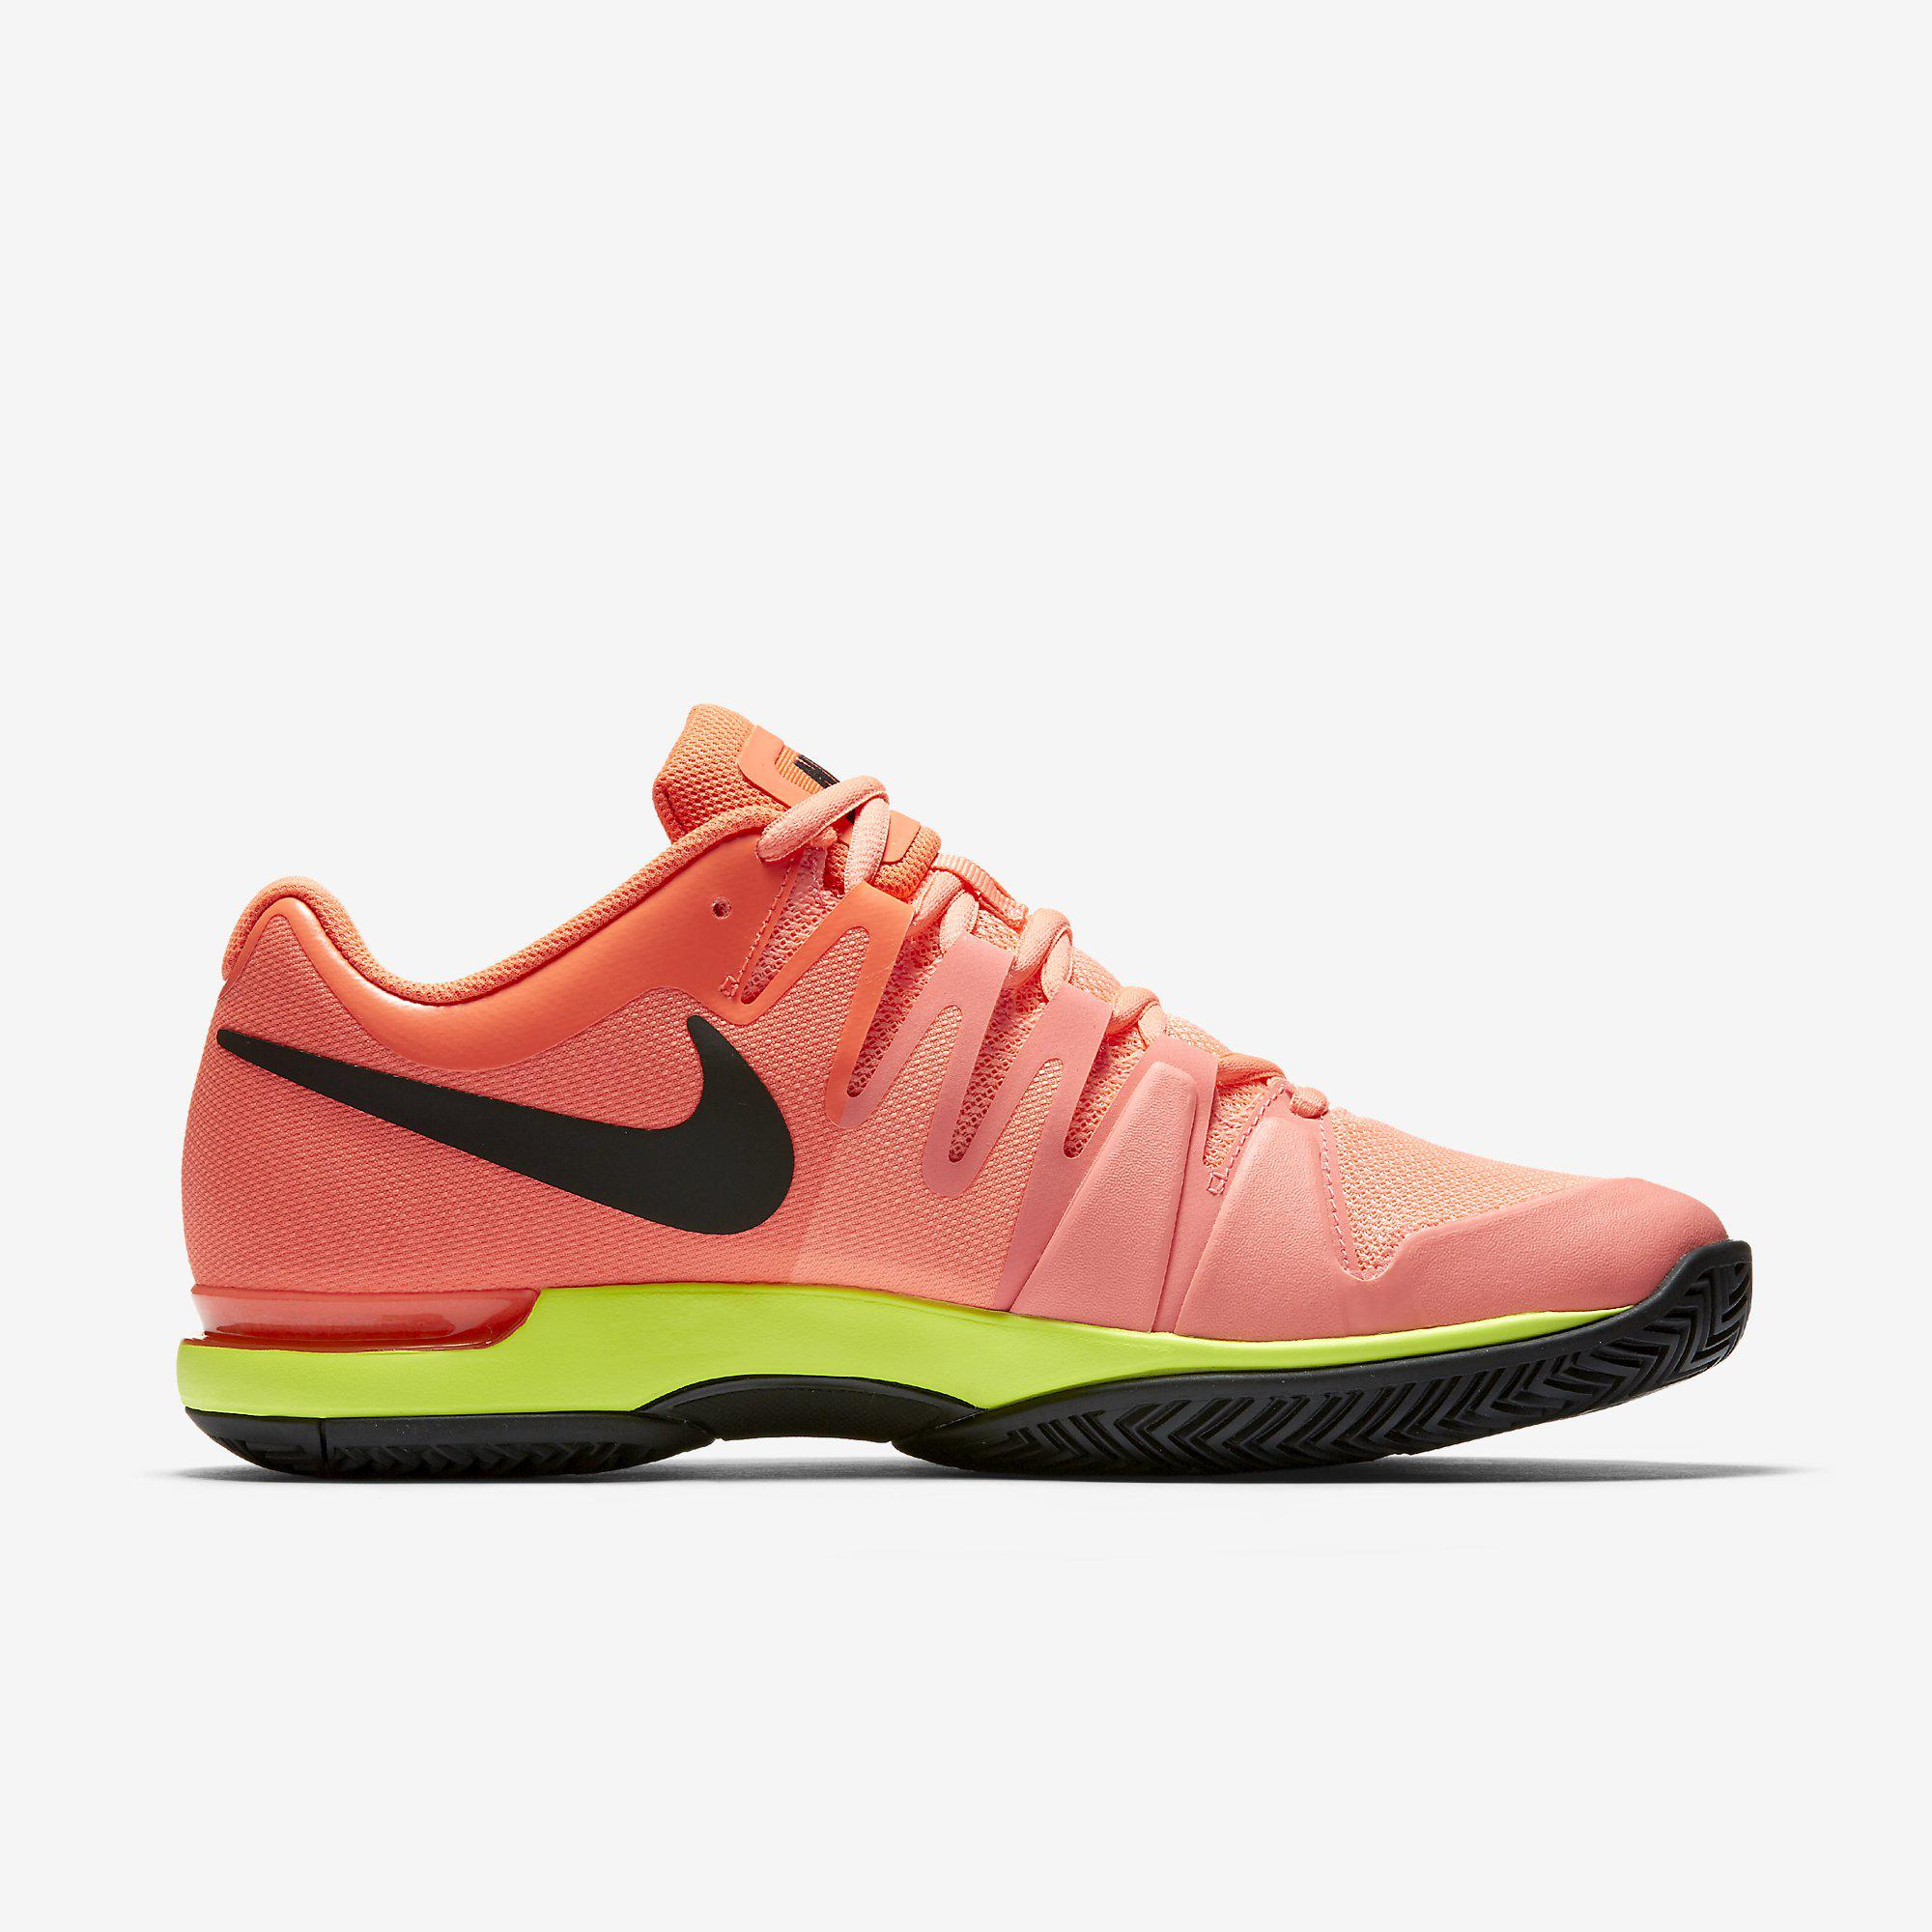 666b710980c Nike Mens Zoom Vapor 9.5 Tour Tennis Shoes - Lava Glow Hyper Orange ...